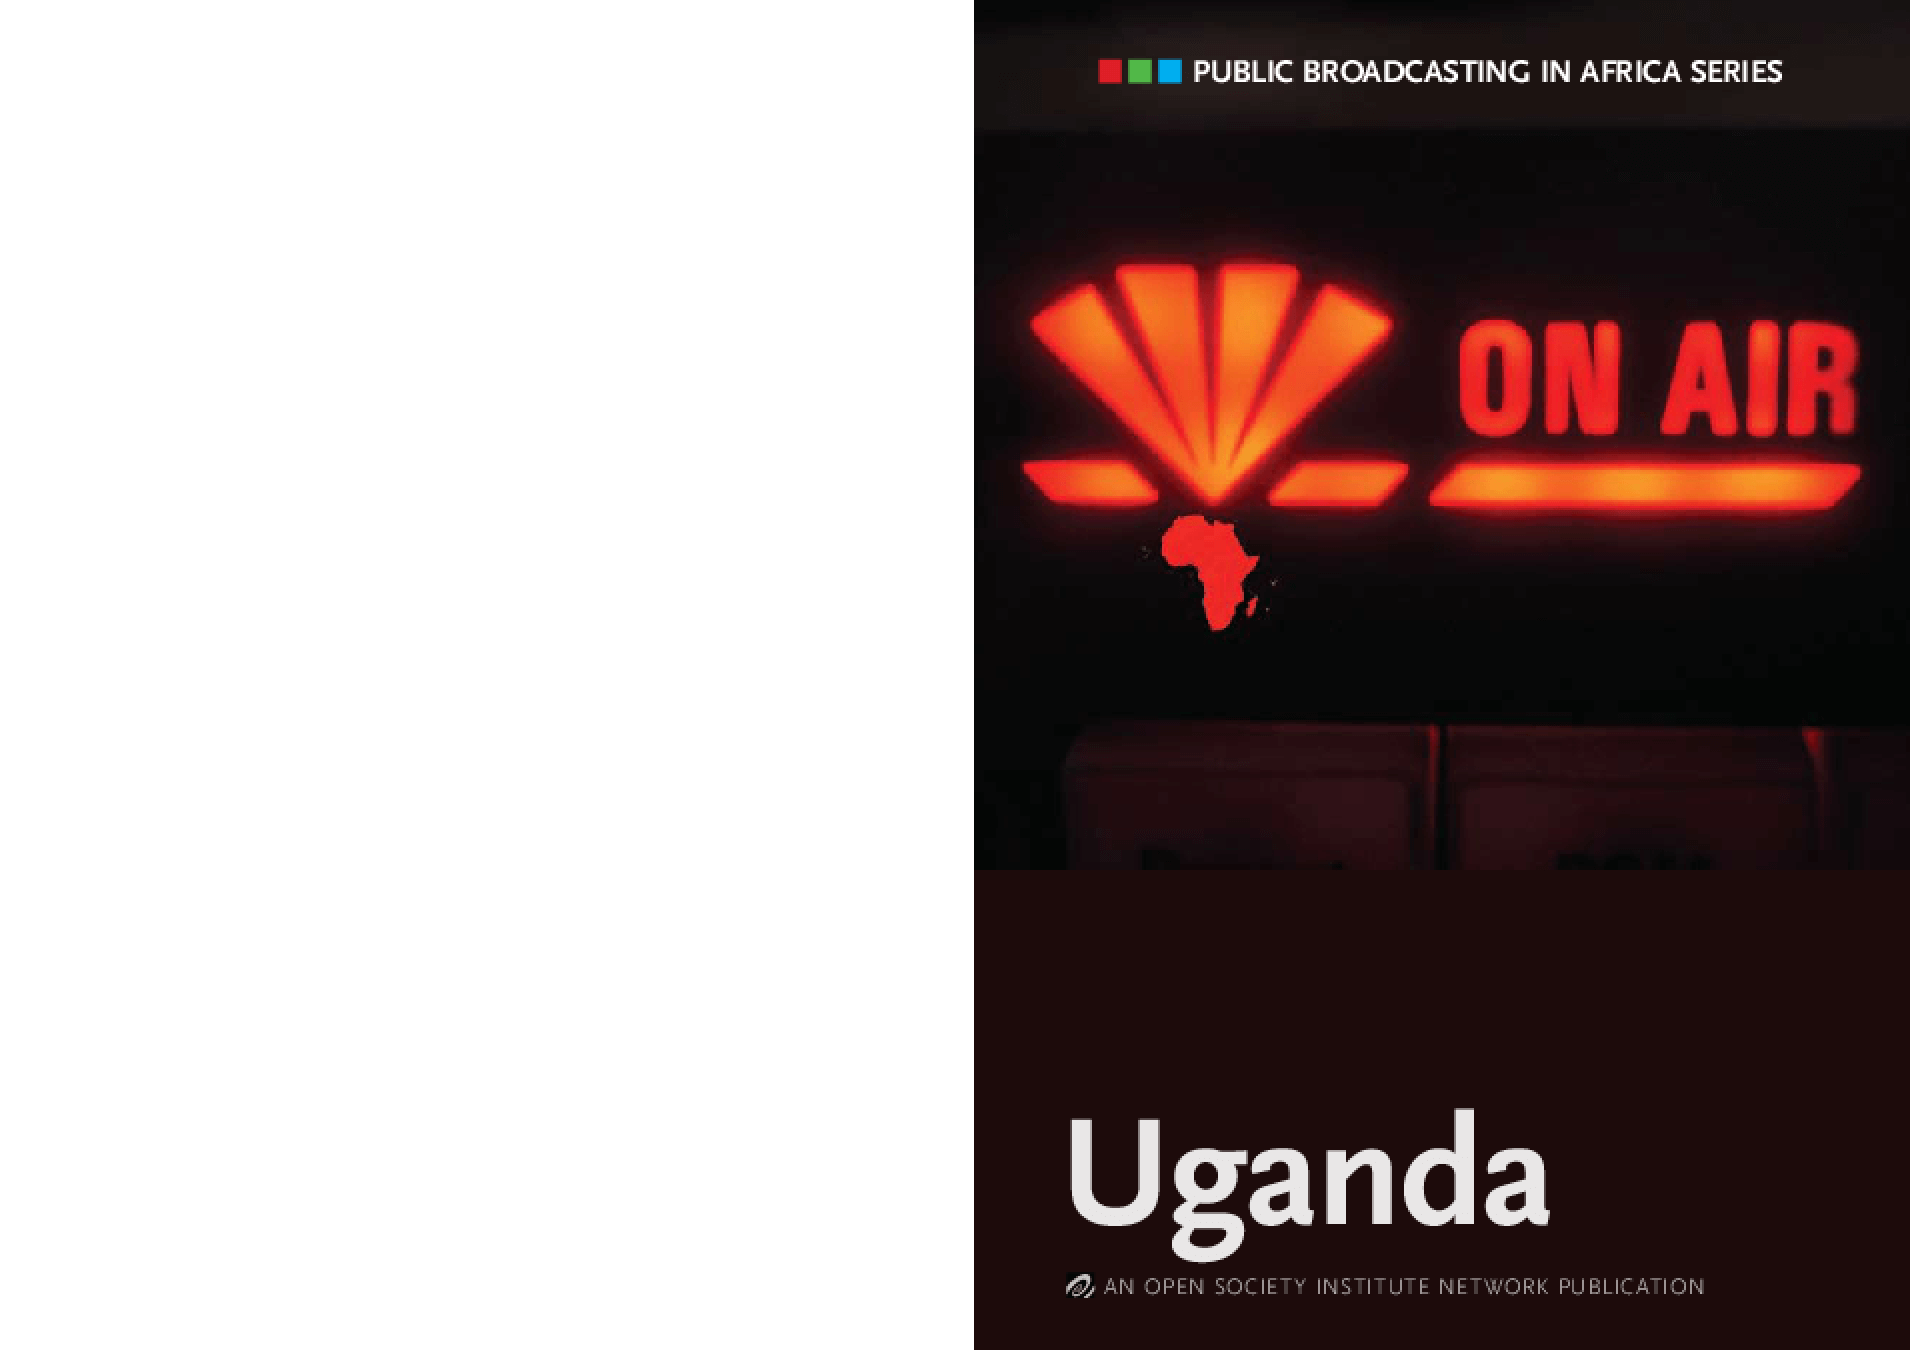 On Air: Uganda Public Broadcasting Corporation Survey Report